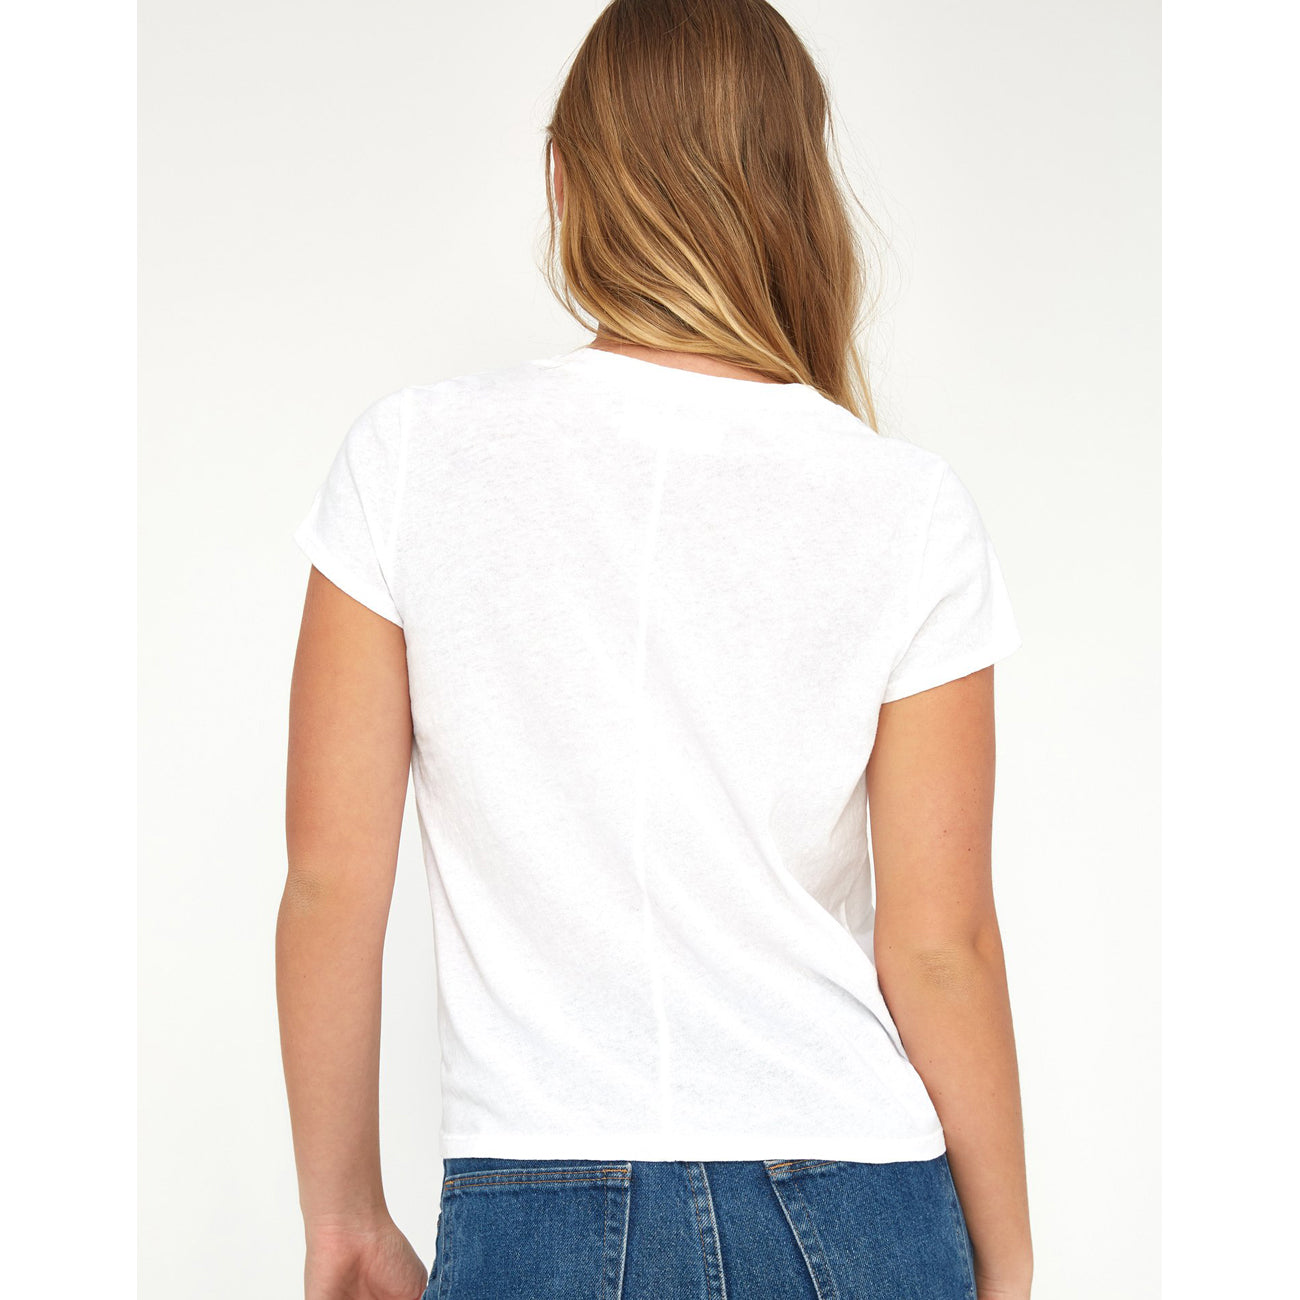 luxe frank tee in whitewash